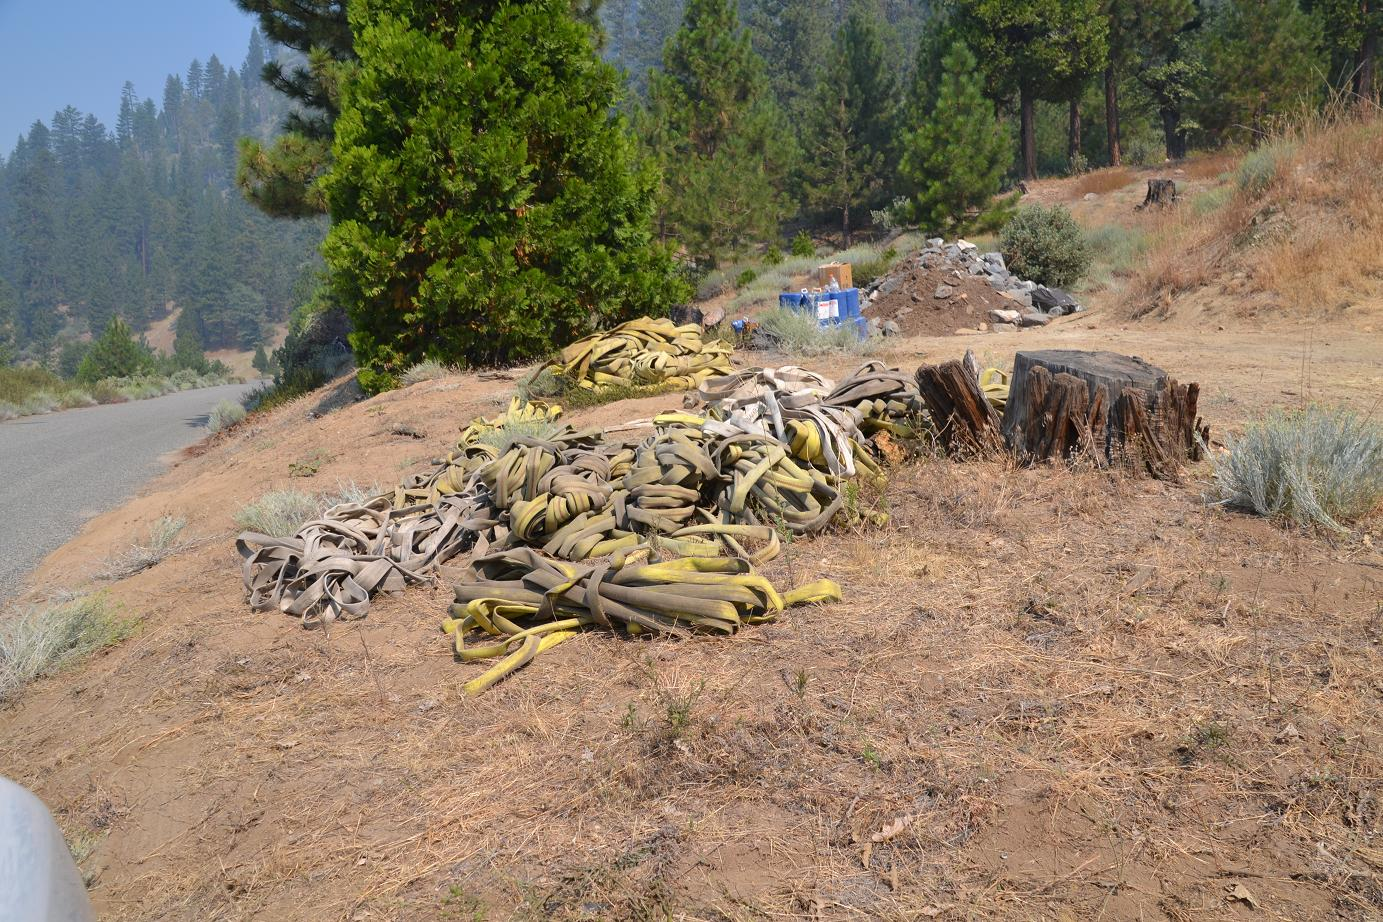 Used hose to be returned to camp and rerolled - photo by Gina Clugston